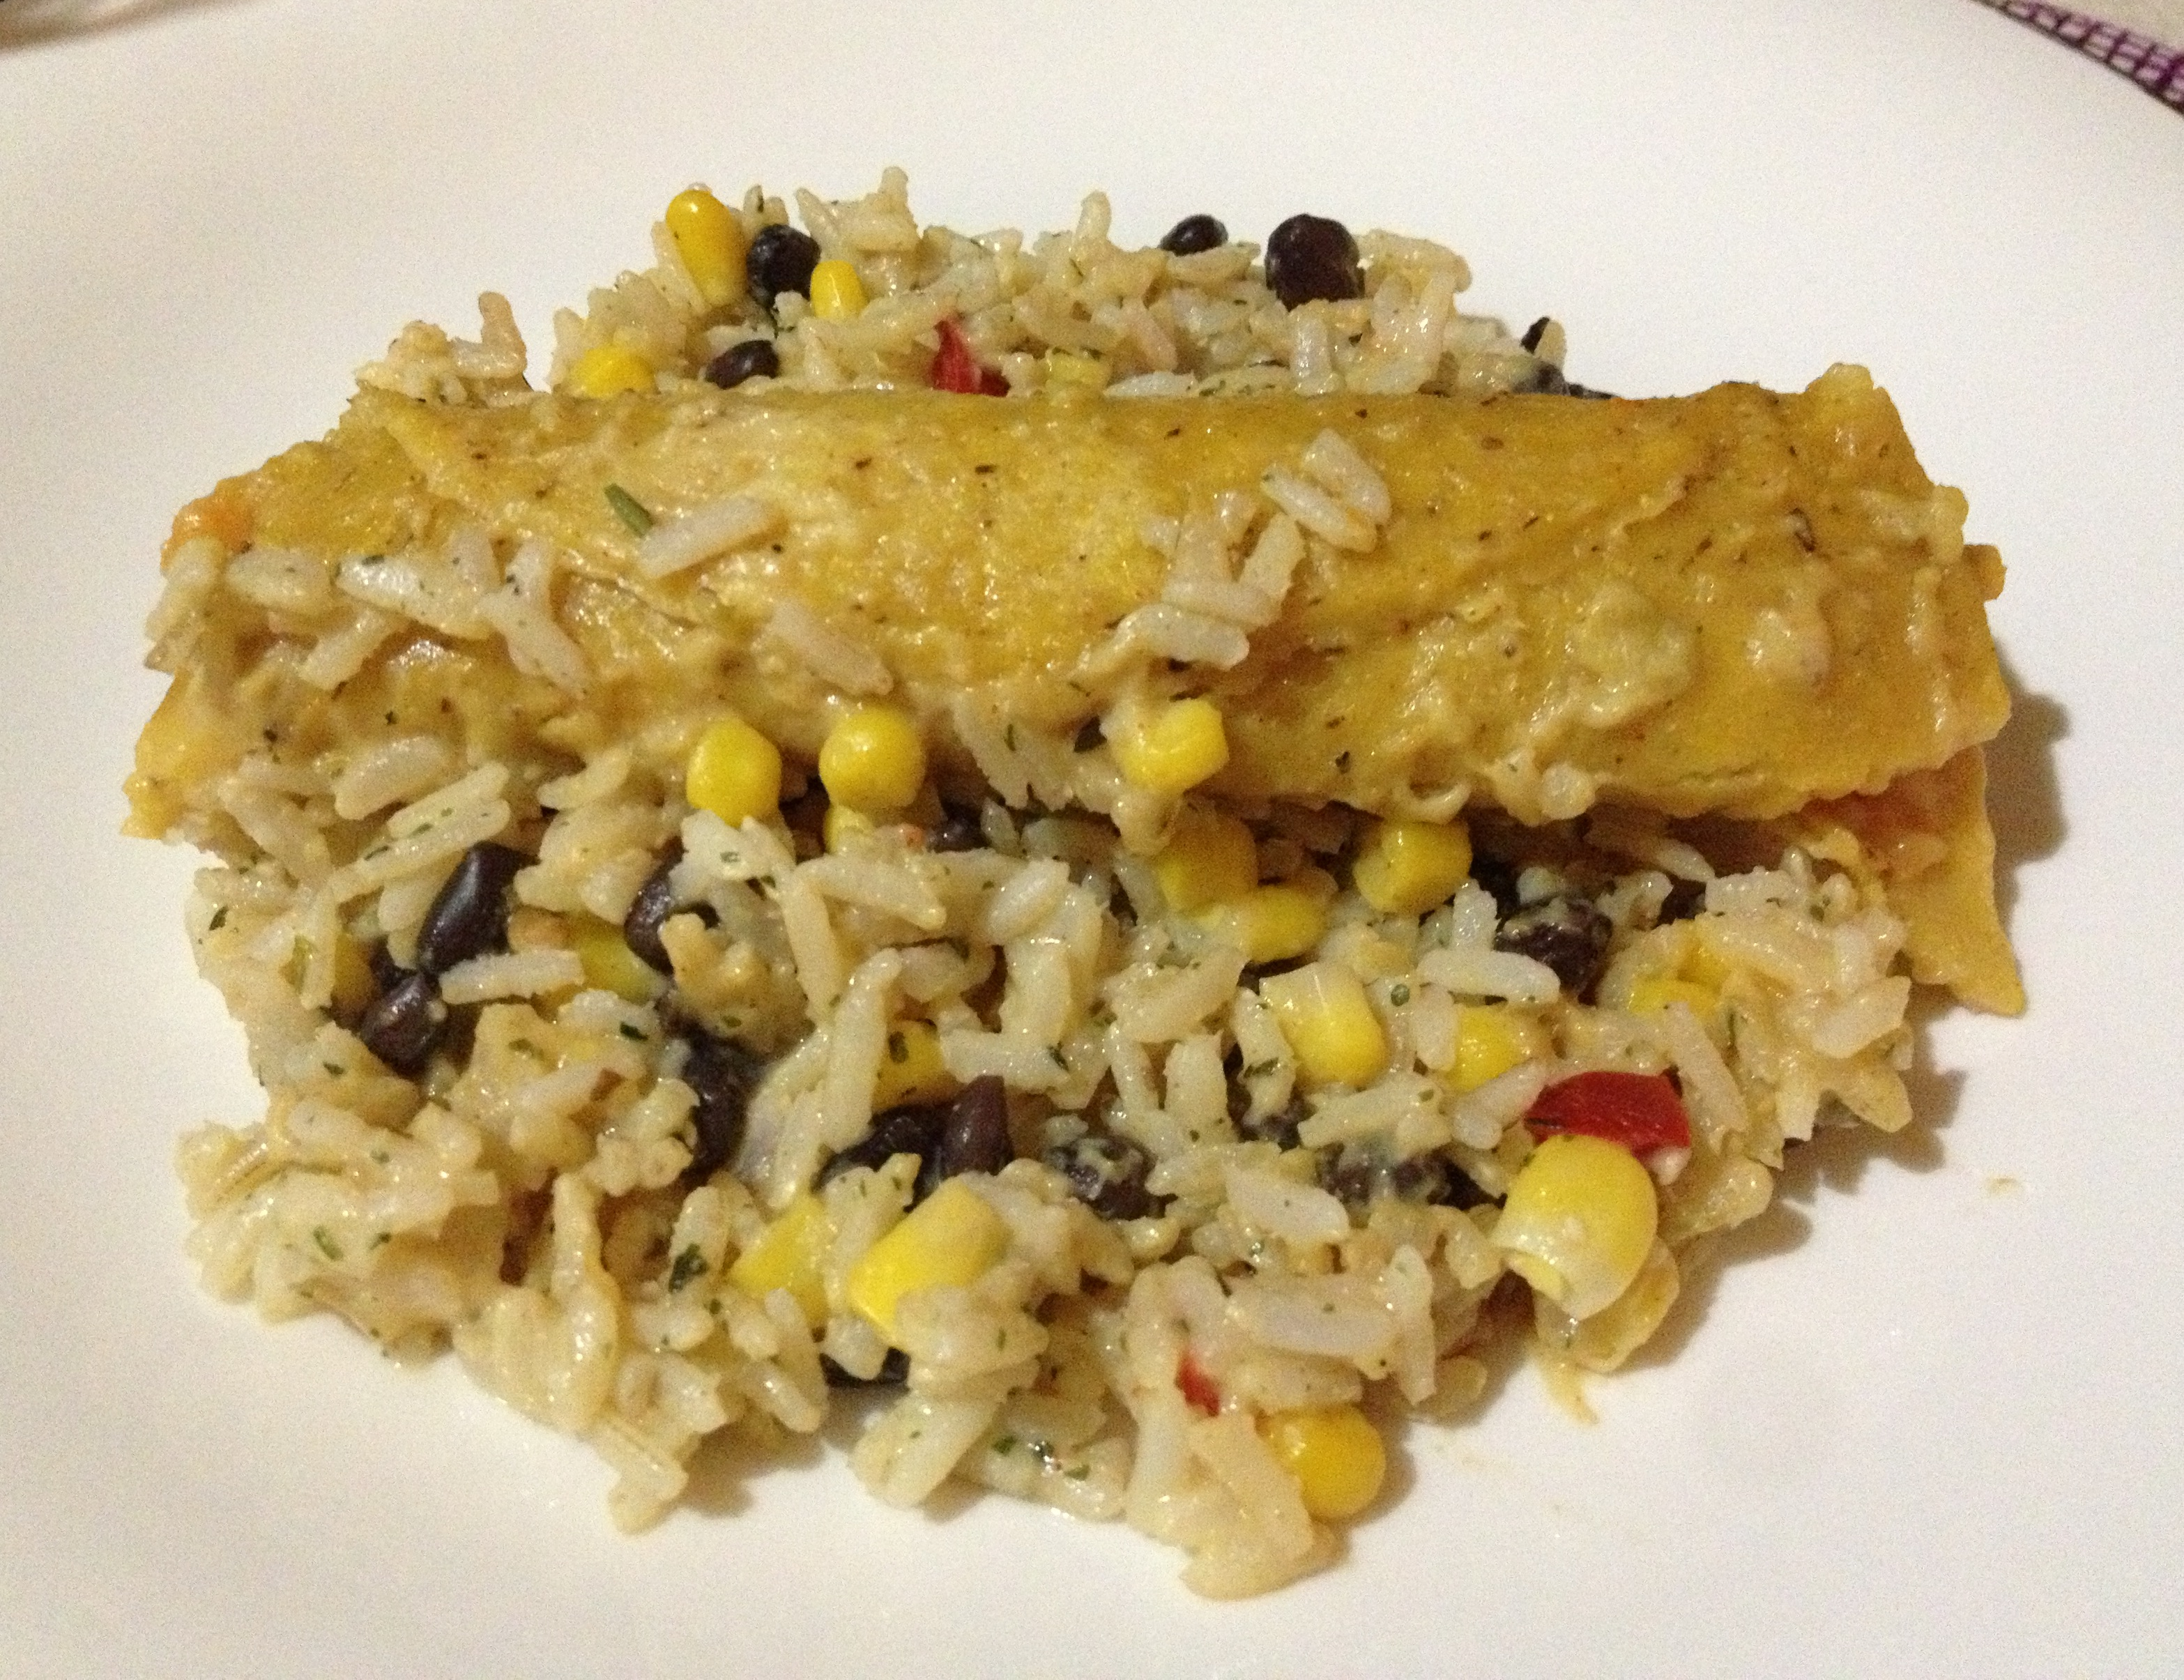 Baked healthy choice enchilada